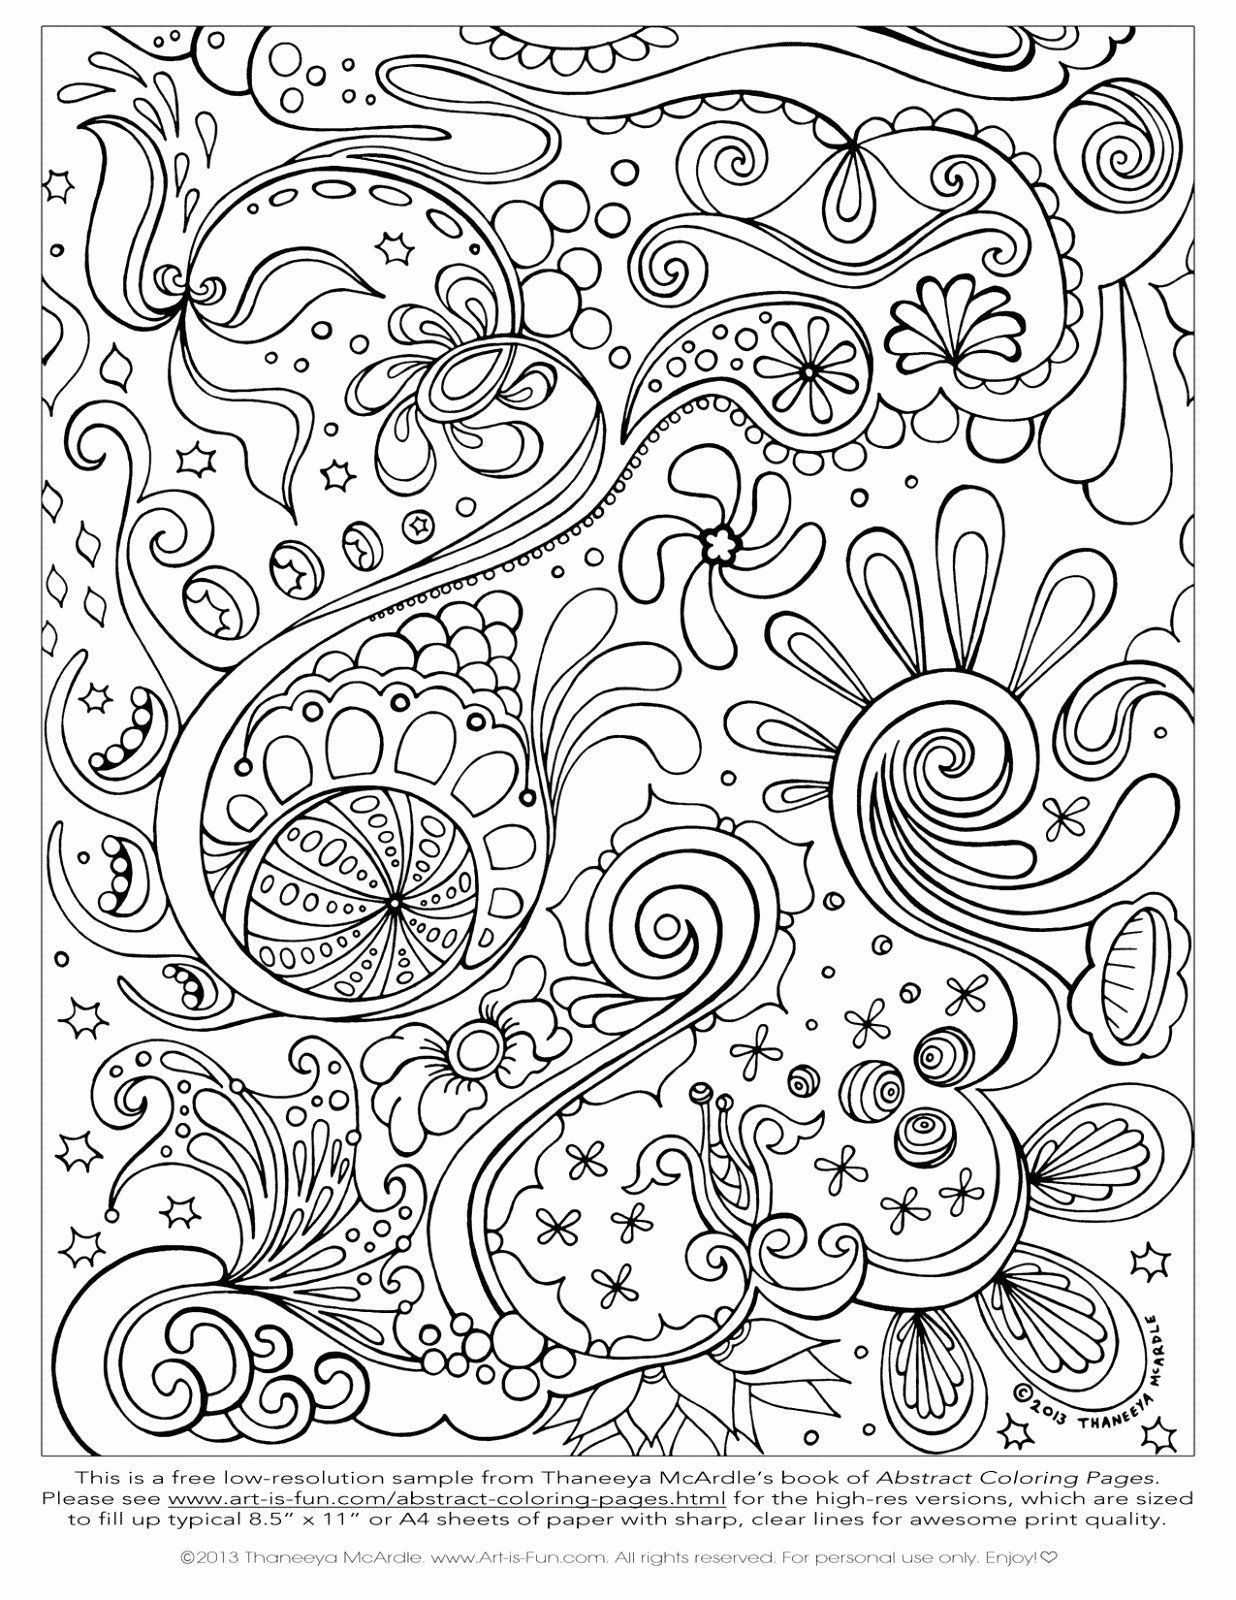 Fourth Of July Coloring Pictures Lovely Awesome Fun Coloring Pages Financialsolutionsub In 2020 Abstract Coloring Pages Flower Coloring Pages Free Coloring Pages